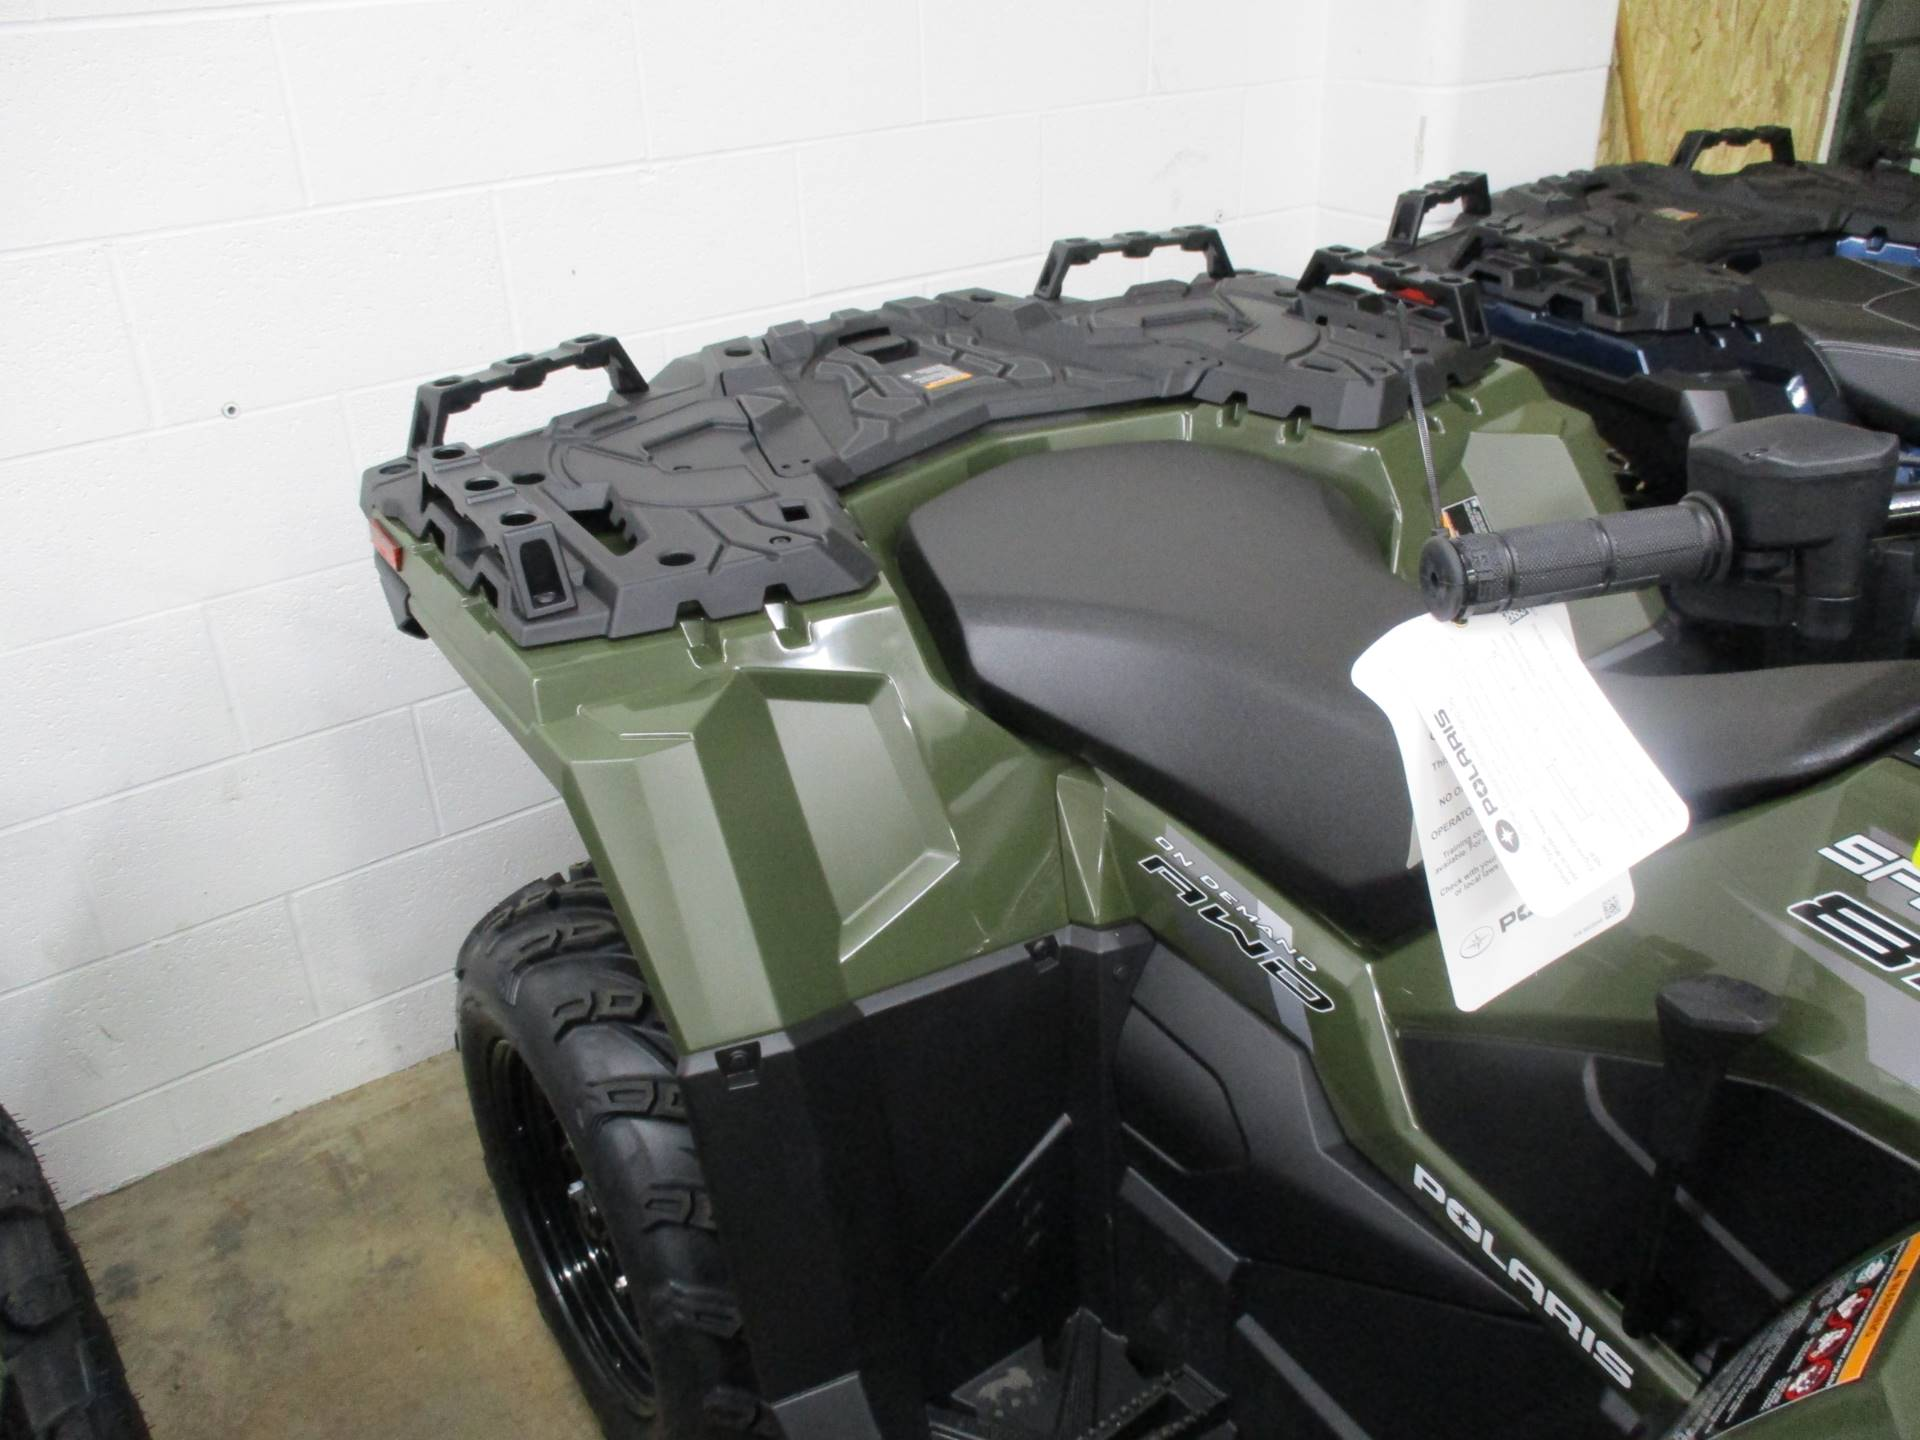 2019 Polaris Sportsman 850 in Tualatin, Oregon - Photo 4